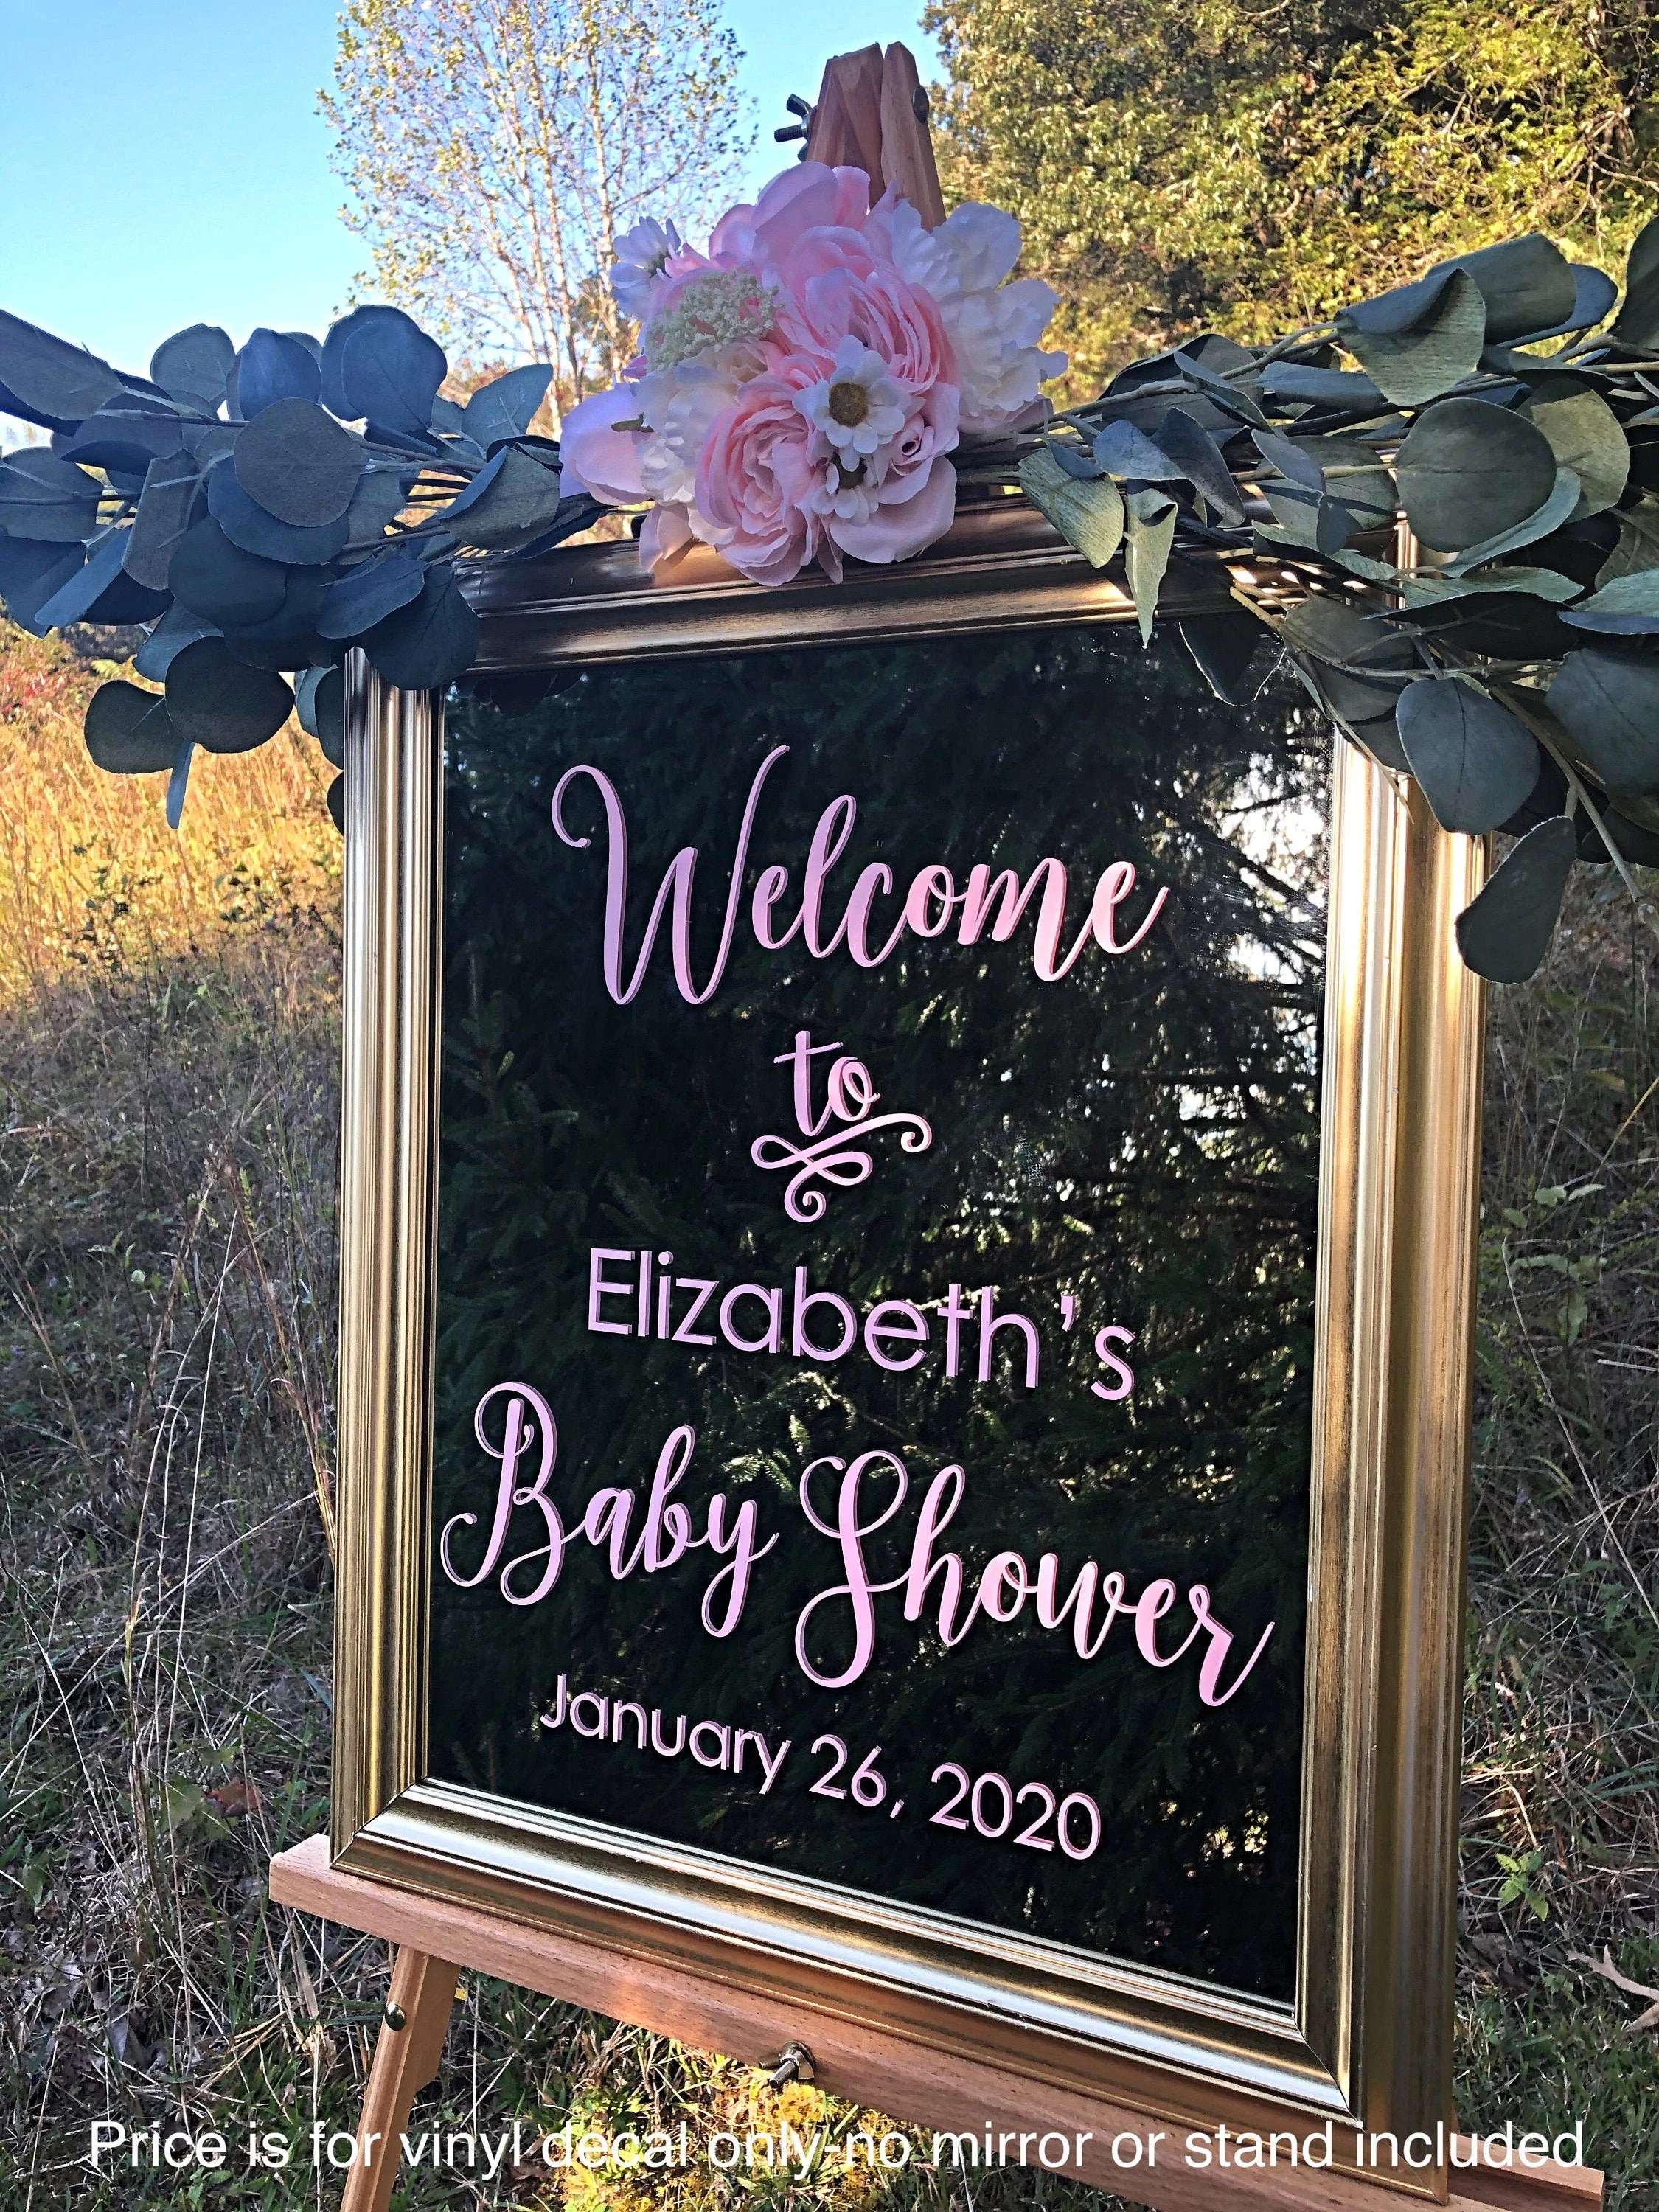 Baby Shower Welcome Stand : shower, welcome, stand, Shower, Decal, Welcome, Mirror, Chalkboard, Decor, Personalized, Vinyl